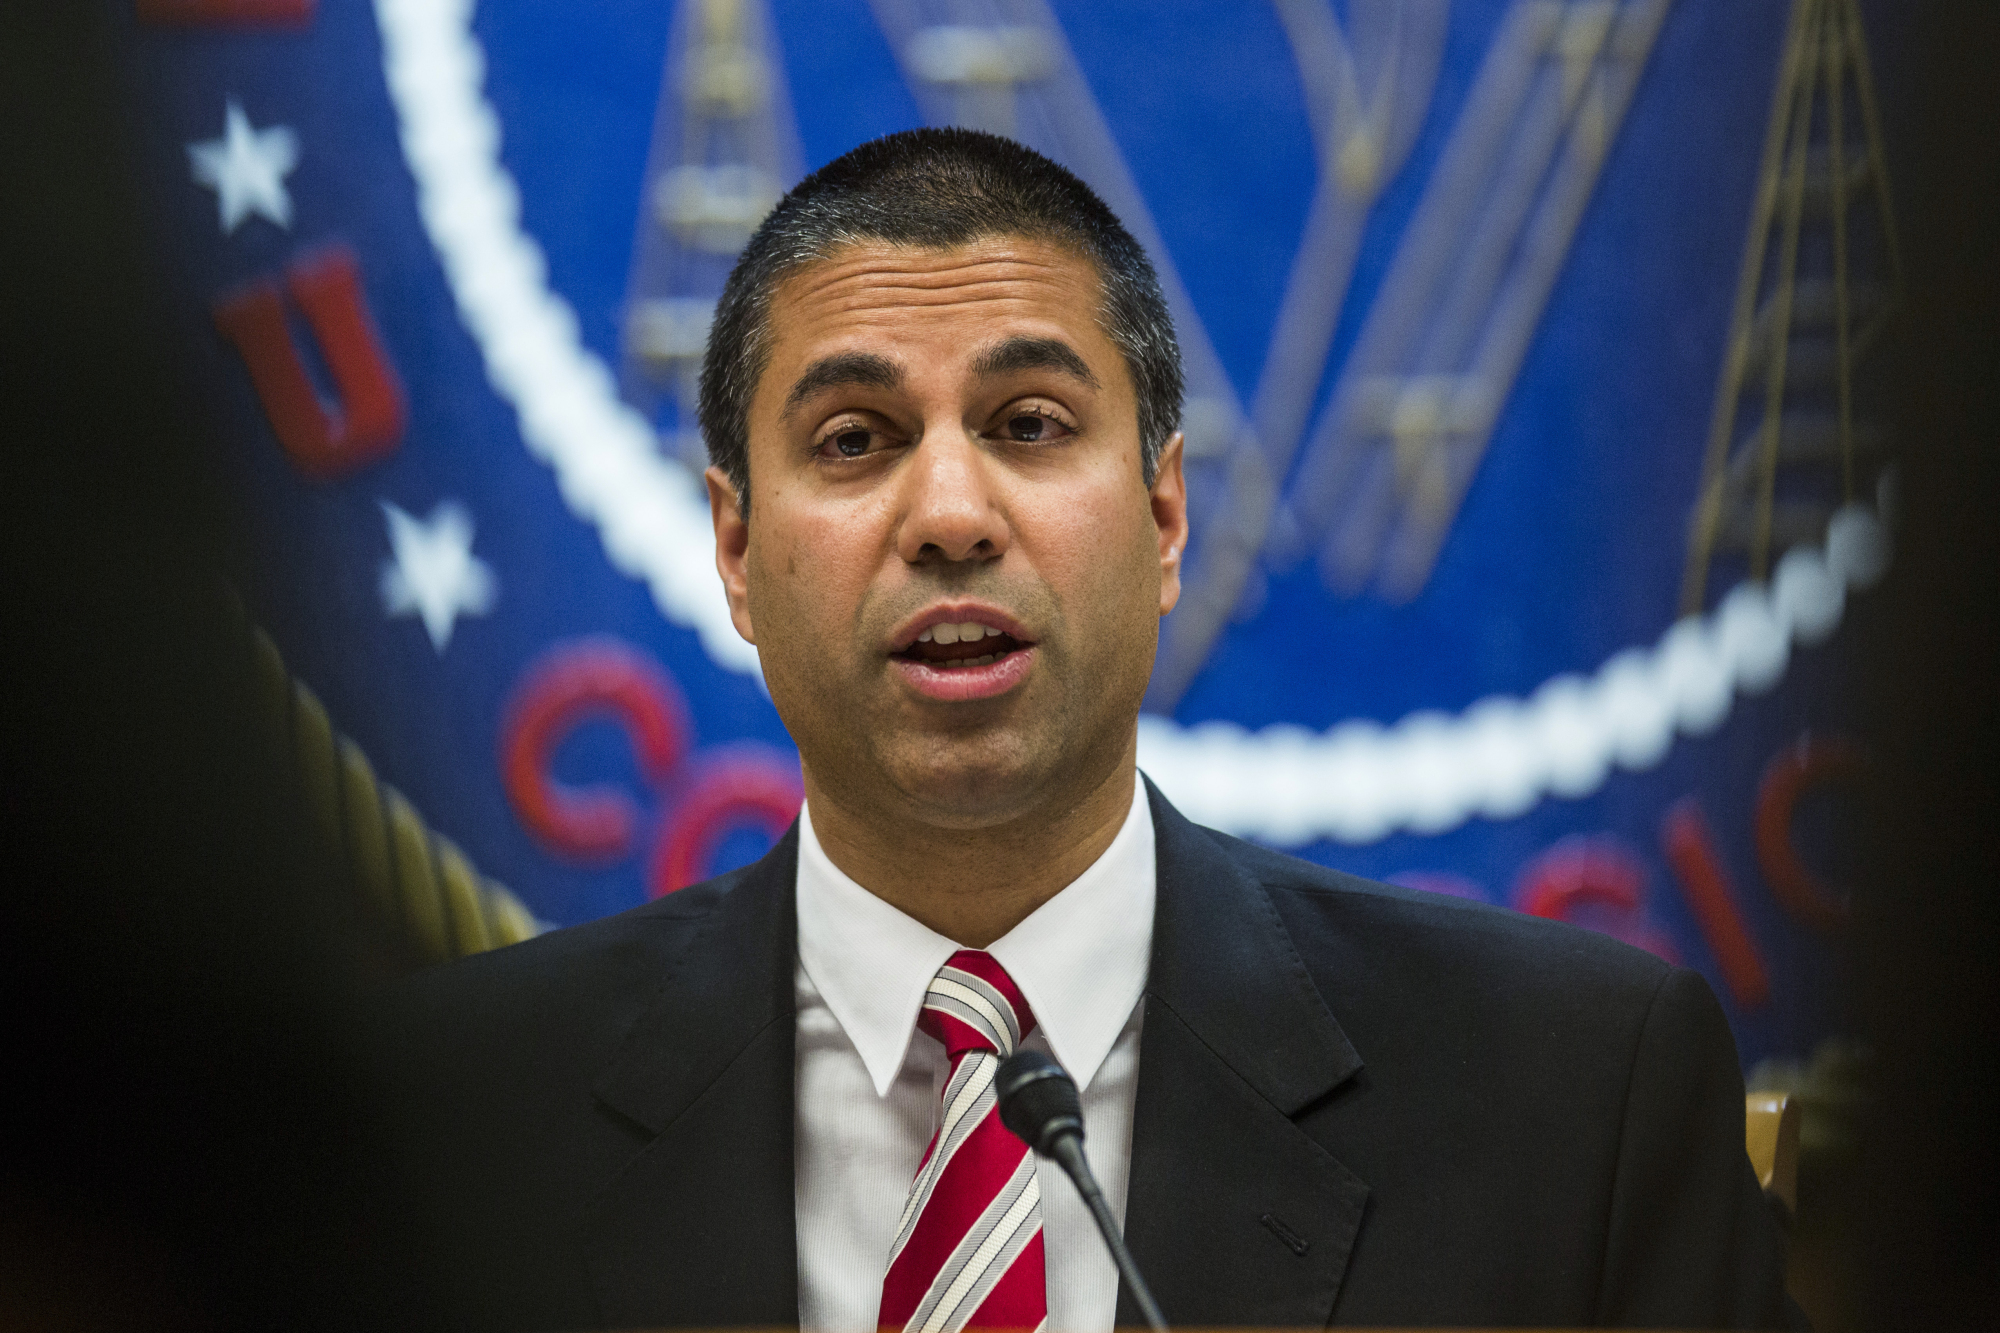 FCC Chairman Ajit Pai this week proposed a plan to eliminate Obama-era 'net neutrality' regulations aimed at compelling internet service providers to keep their networks open to all comers. | BLOOMBERG